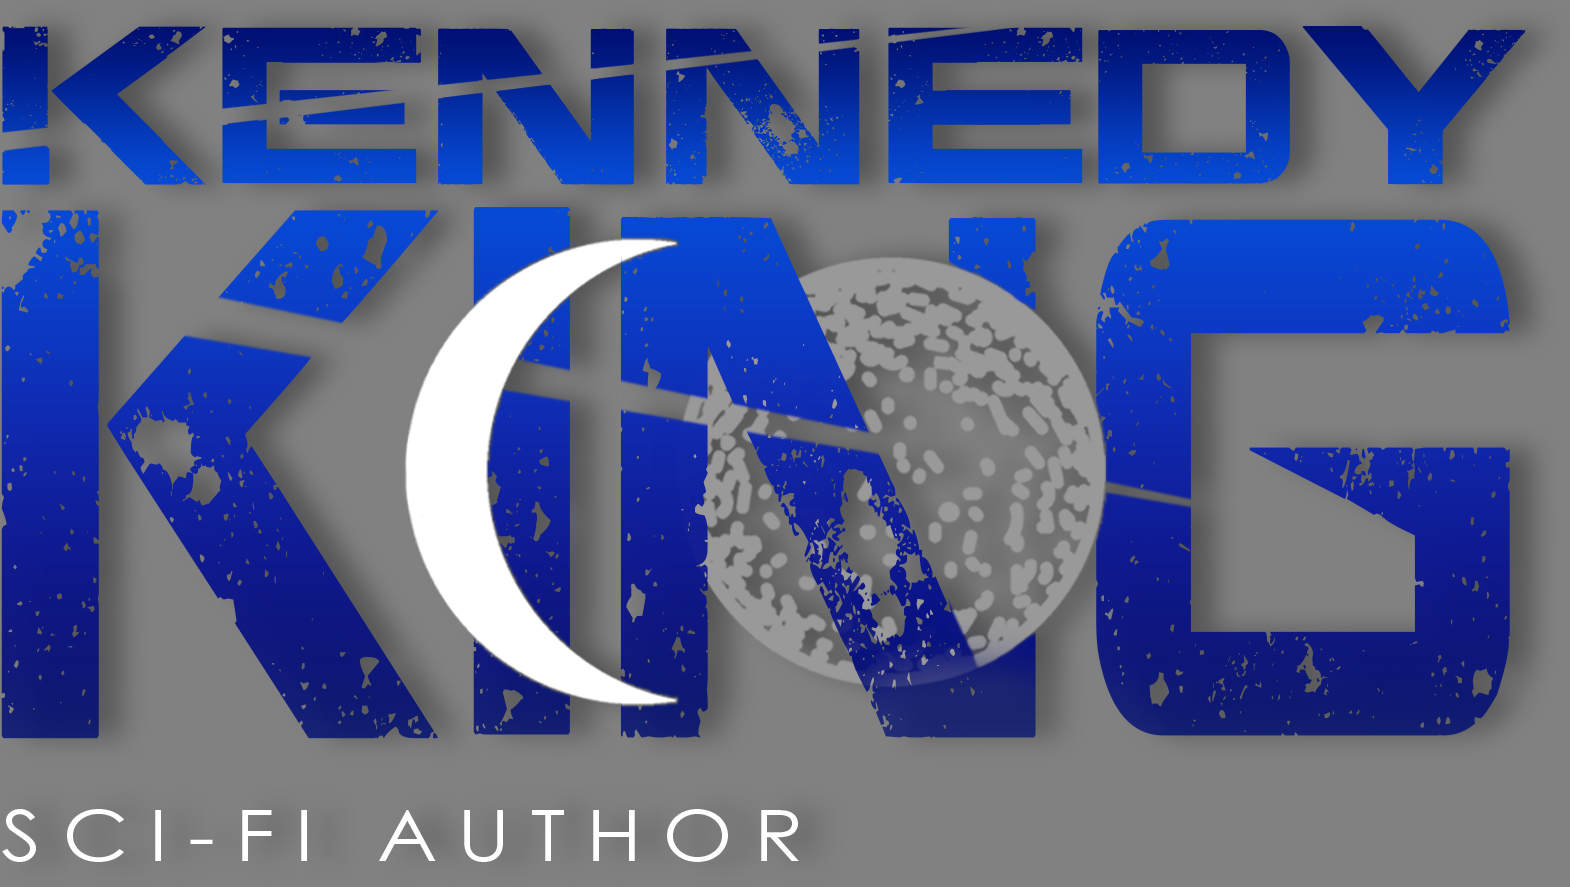 Kennedy King Science Fiction Author